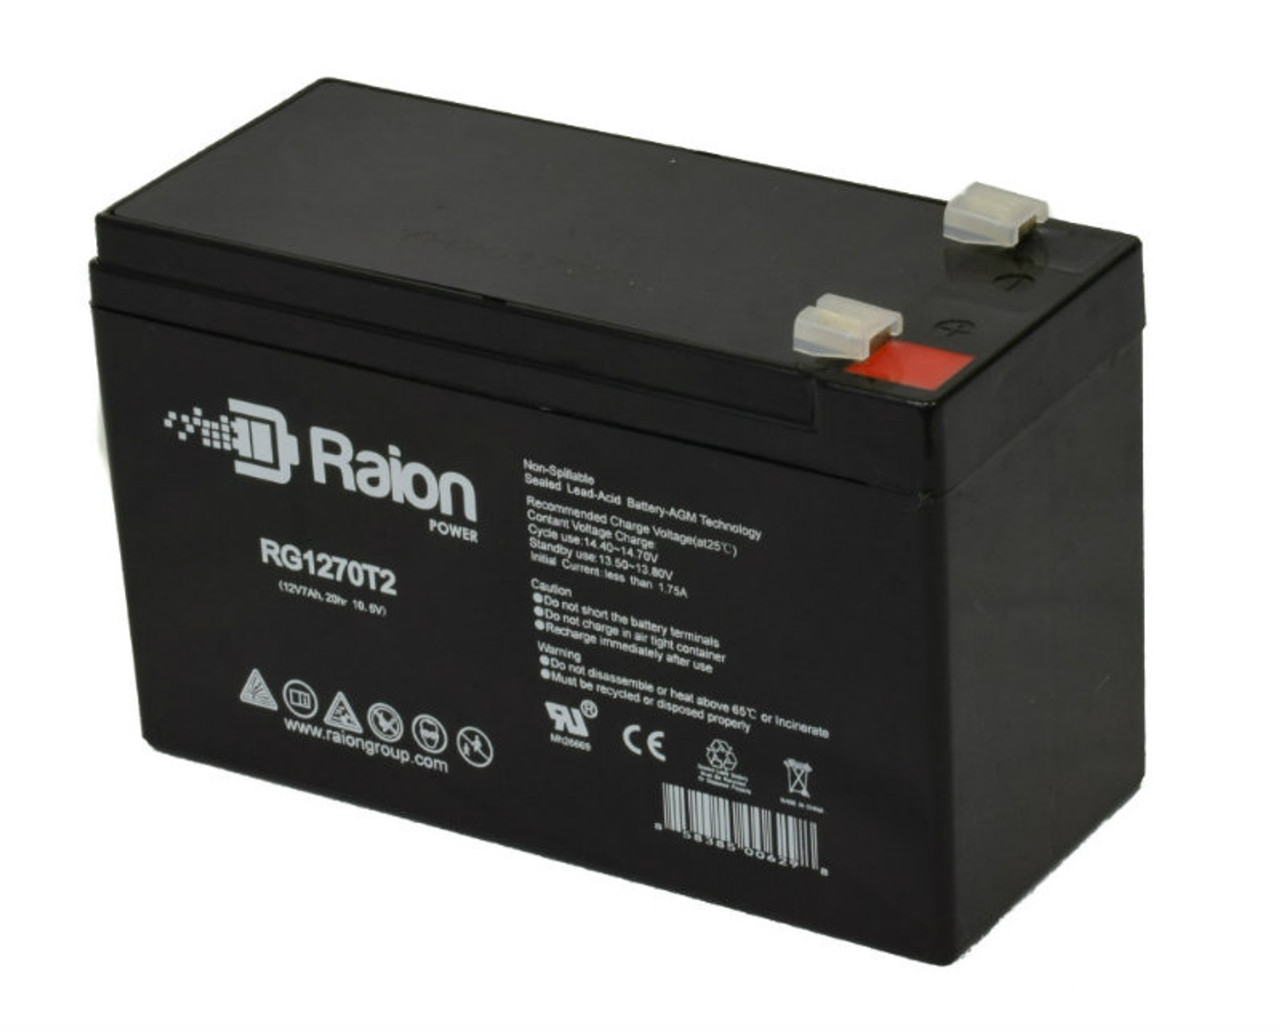 Raion Power RG1270T1 Replacement Battery for Long Way LW-6FM7D